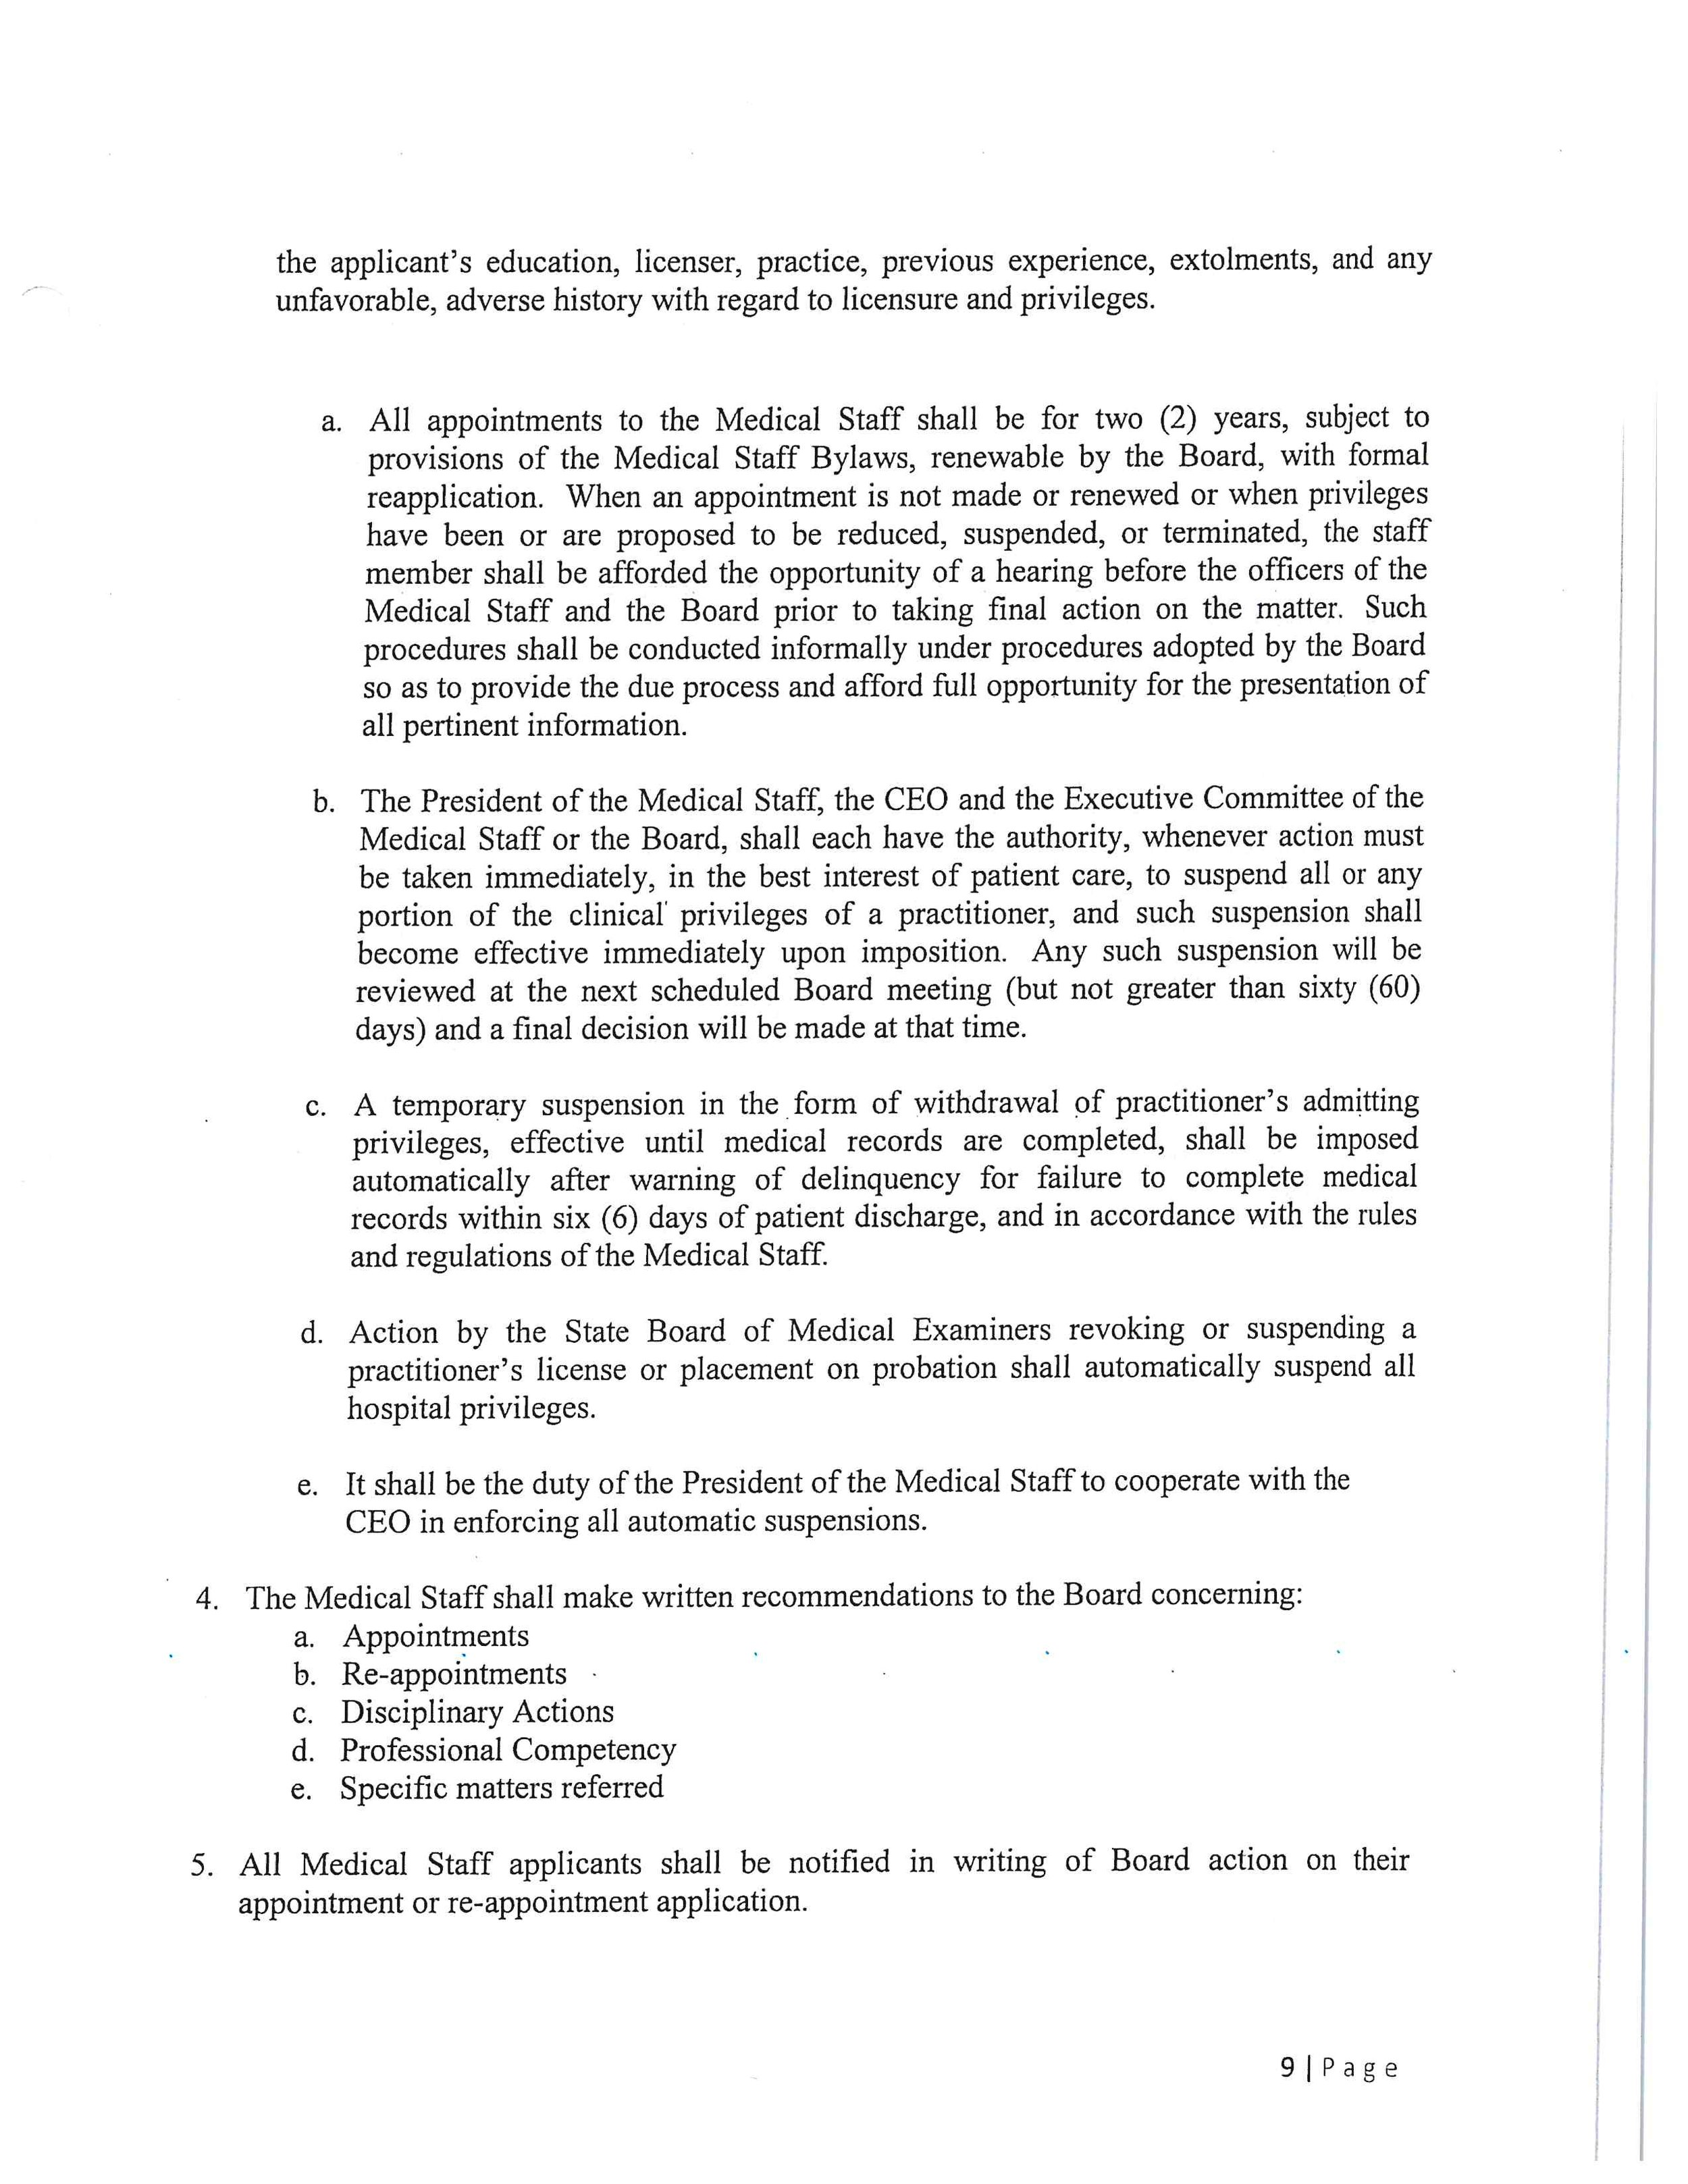 By-Laws NVH 2019-1-31 pg9of11.jpg